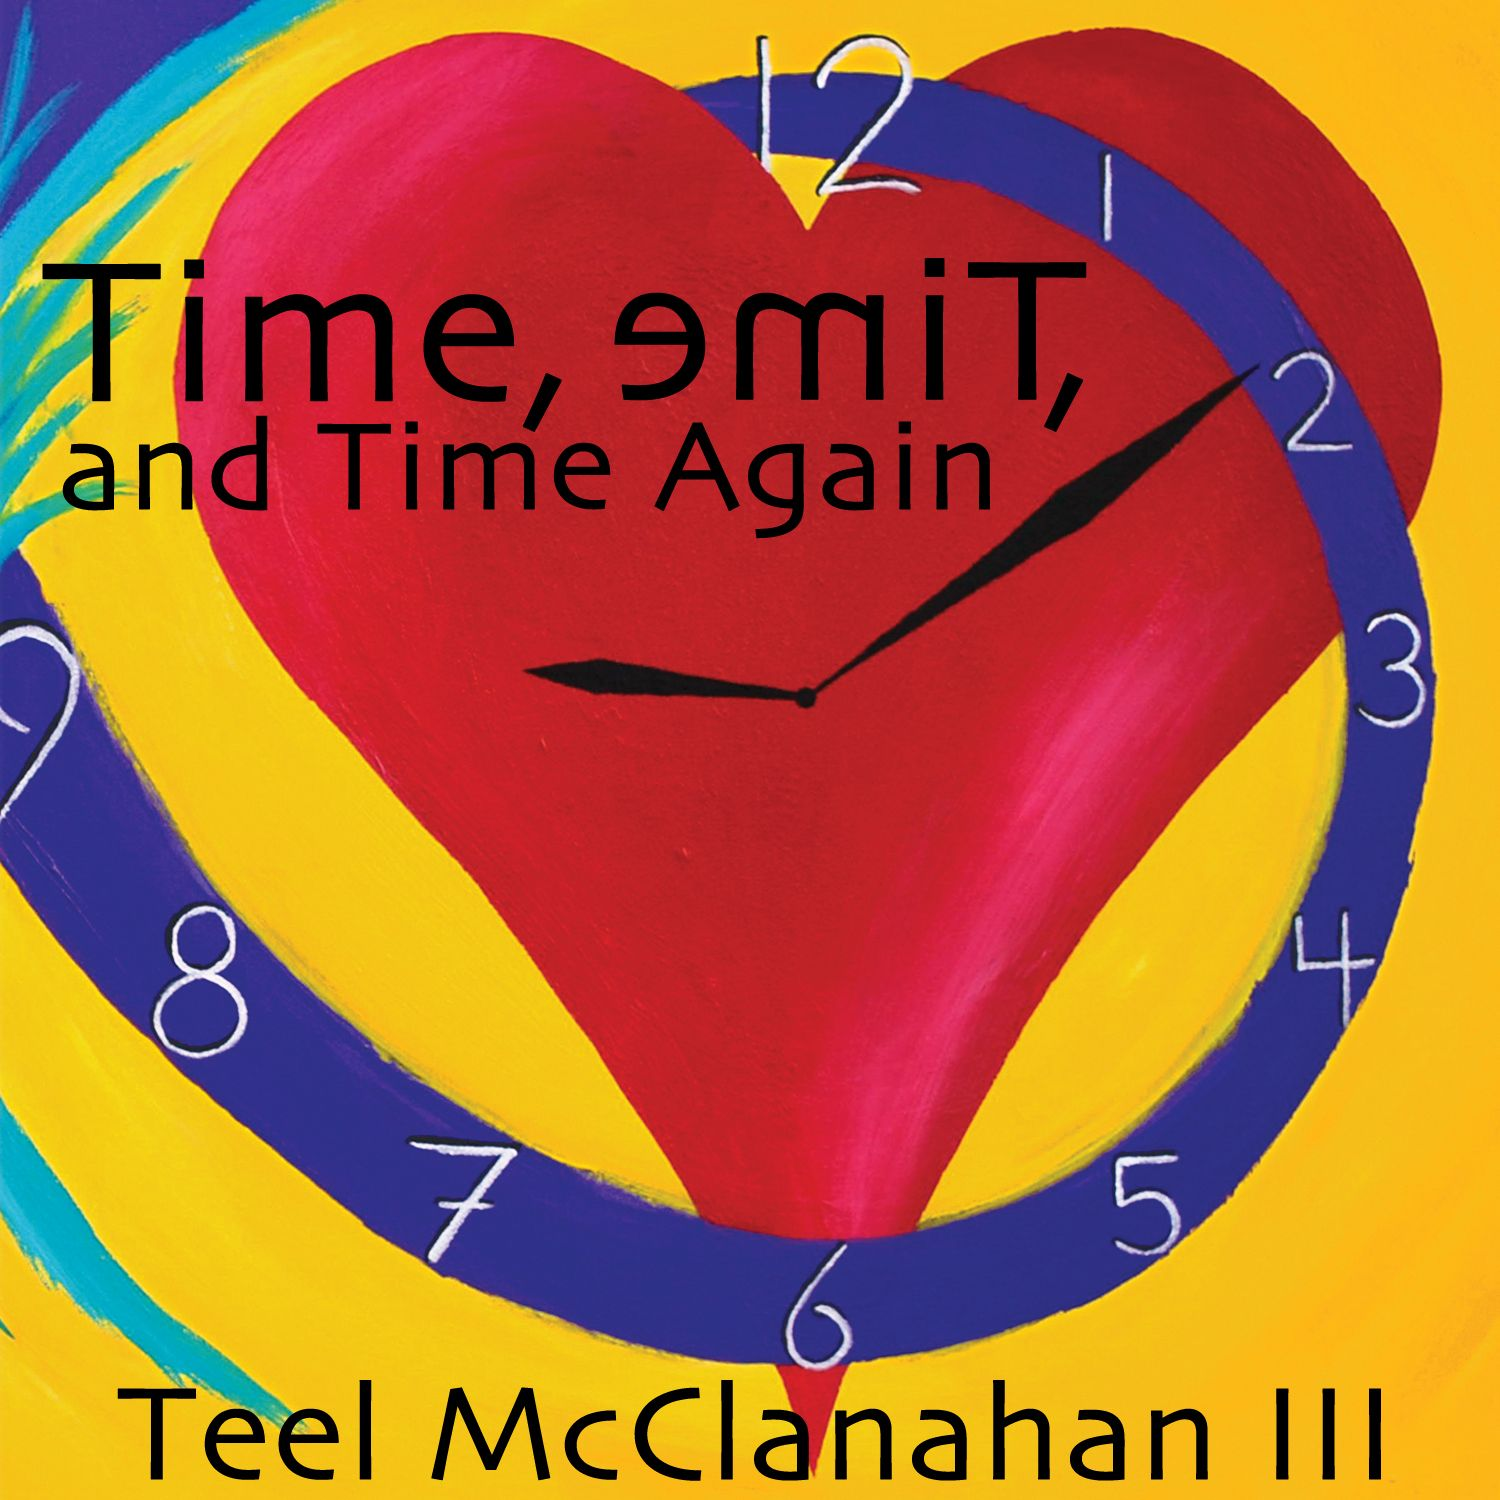 Time, emiT, and Time Again - part 2